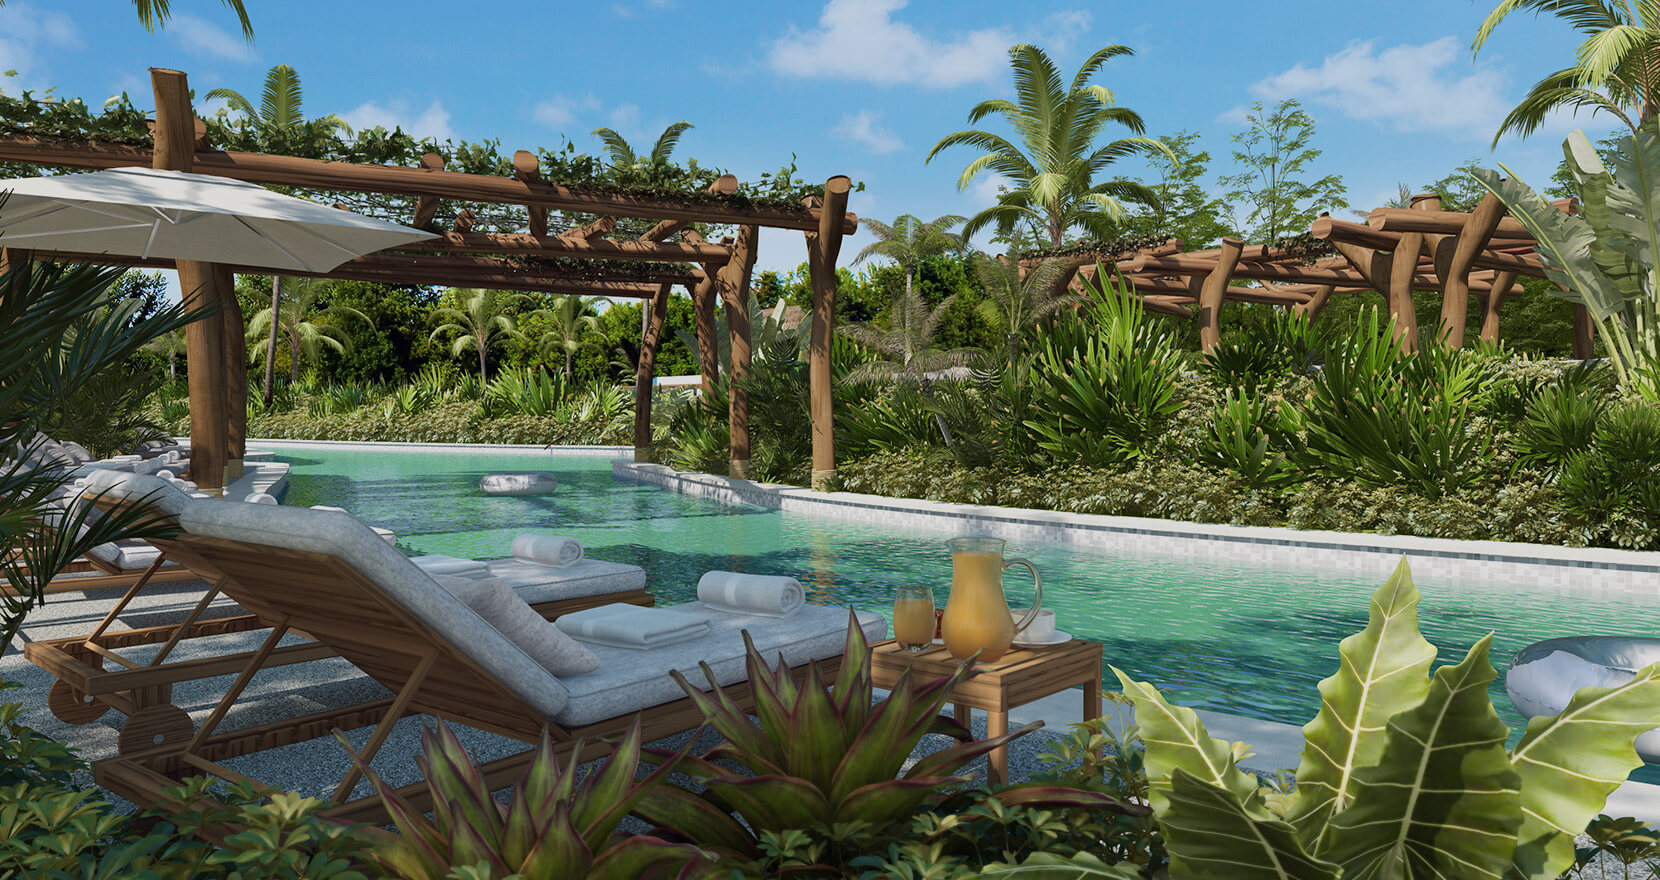 6 Reasons to Book a Jungala Vacation